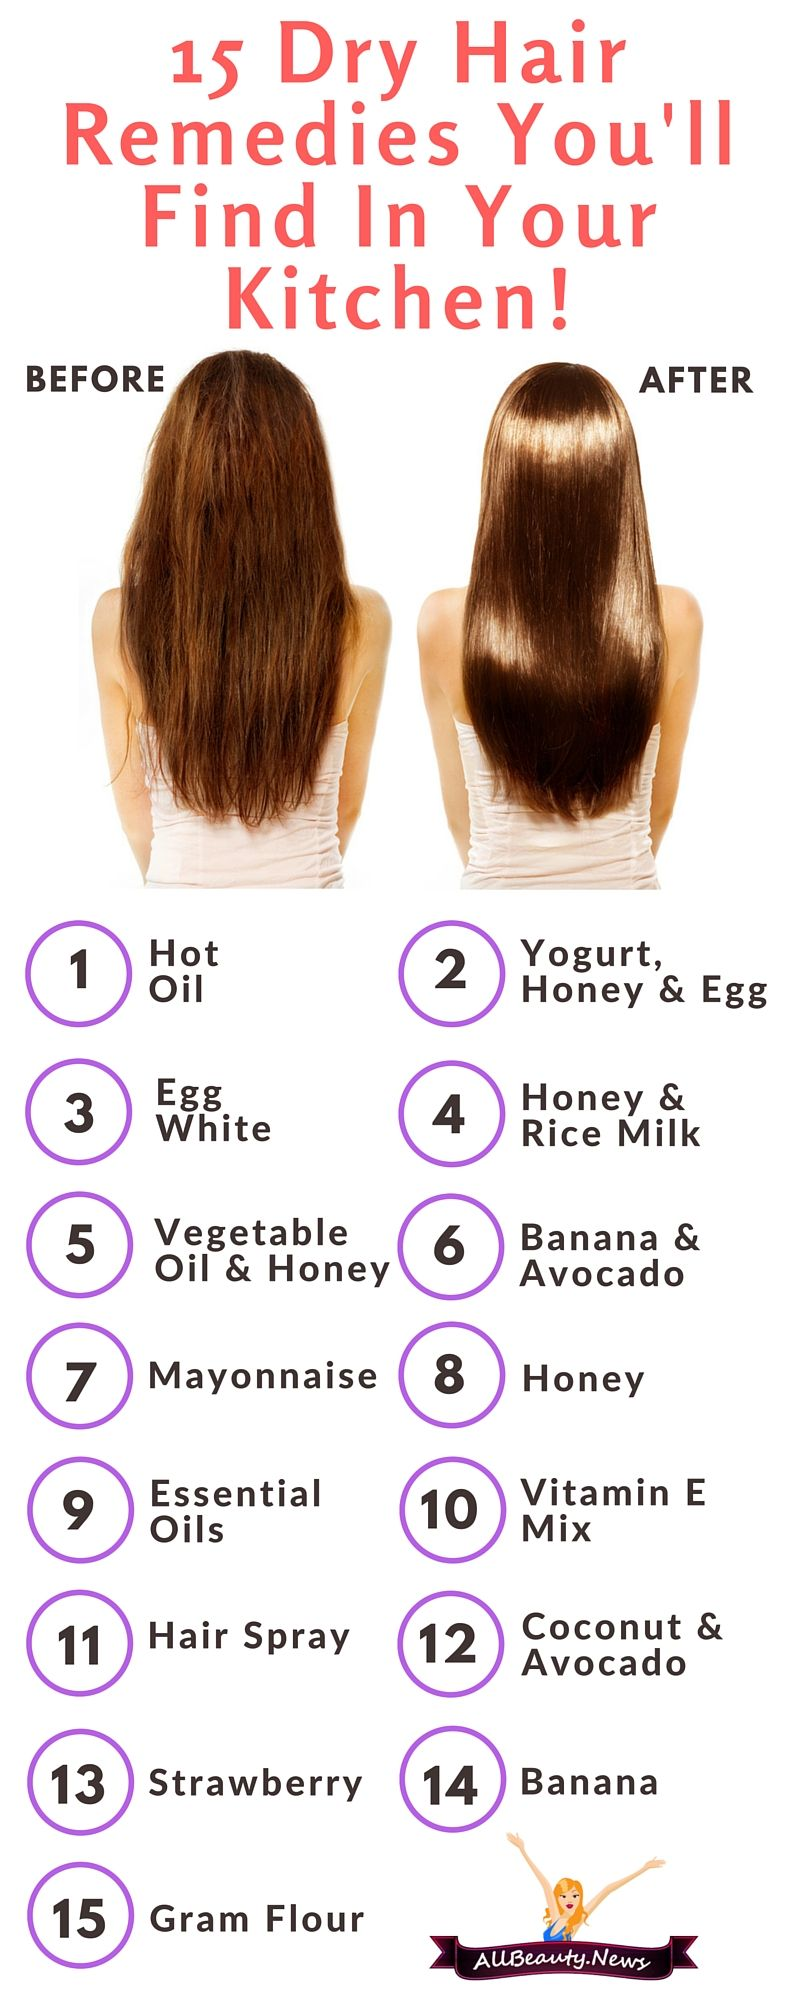 Watch 5 Simple Hair Masks 15 Ayurvedic Products To Help Your Hair Grow Faster video